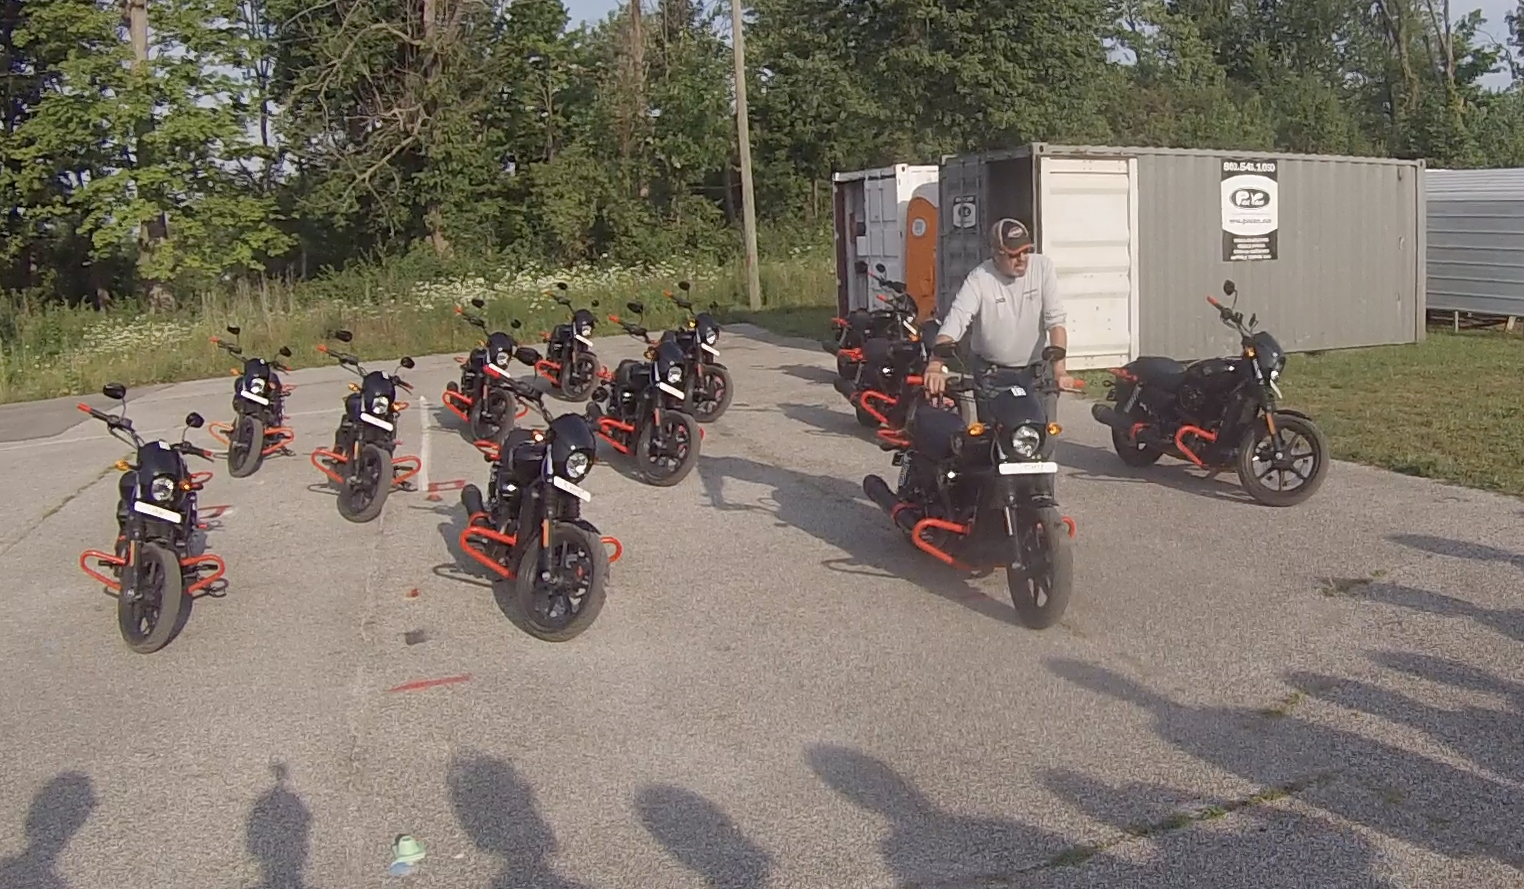 A Harley Davidson Riding Academy coach demonstrating how the front brakes of a motorcycle operate.